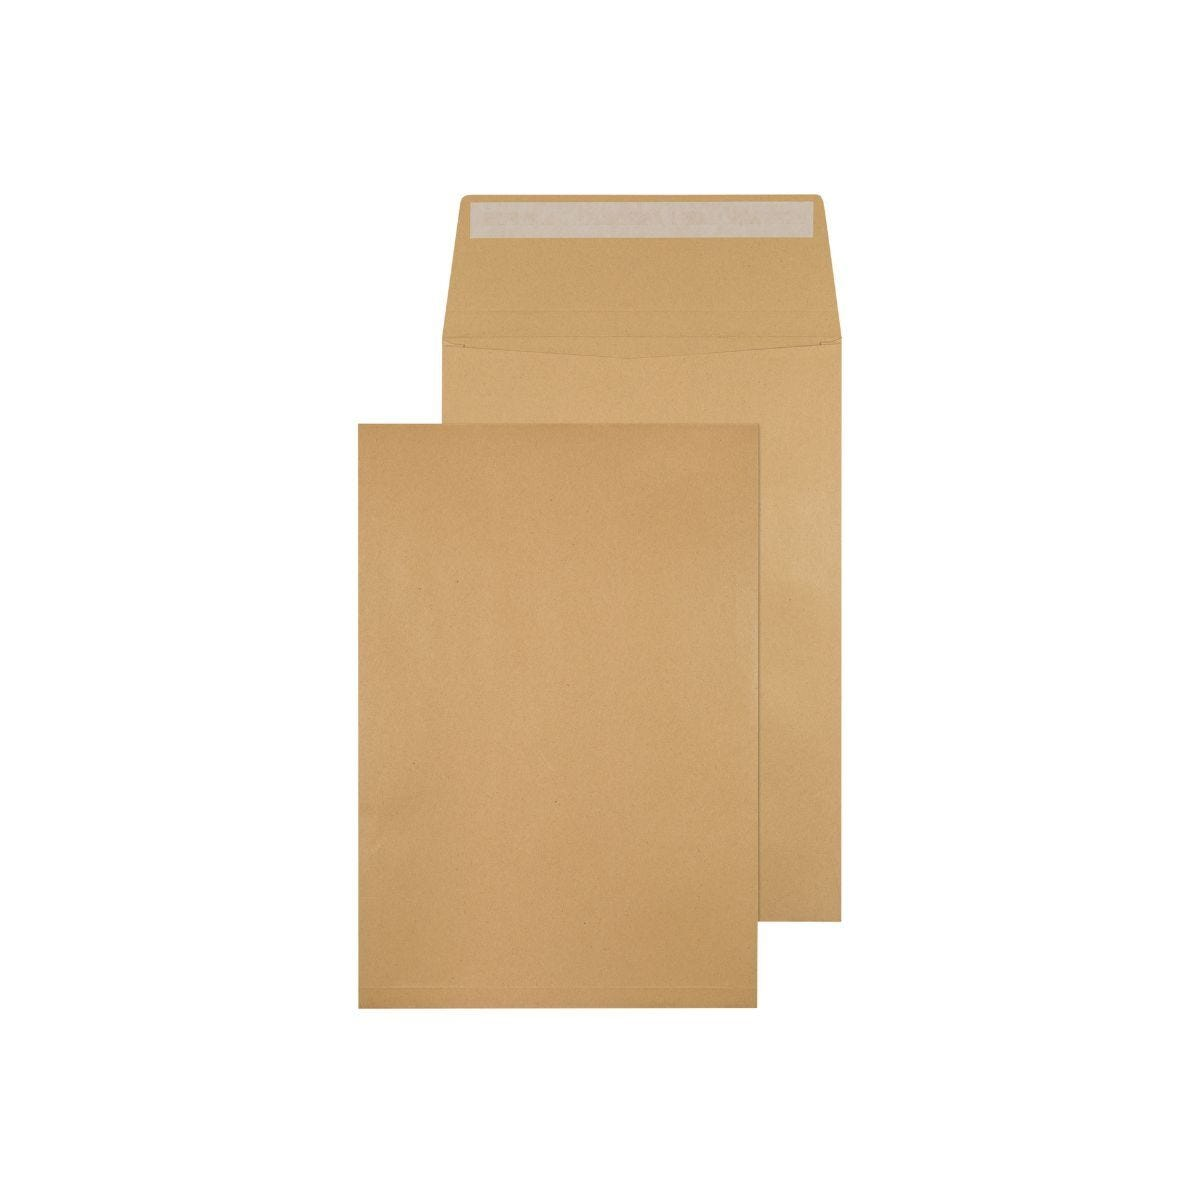 Q-Connect Gusset Envelope C4 324x229x25mm 120gsm Peel and Seal Pack of 100